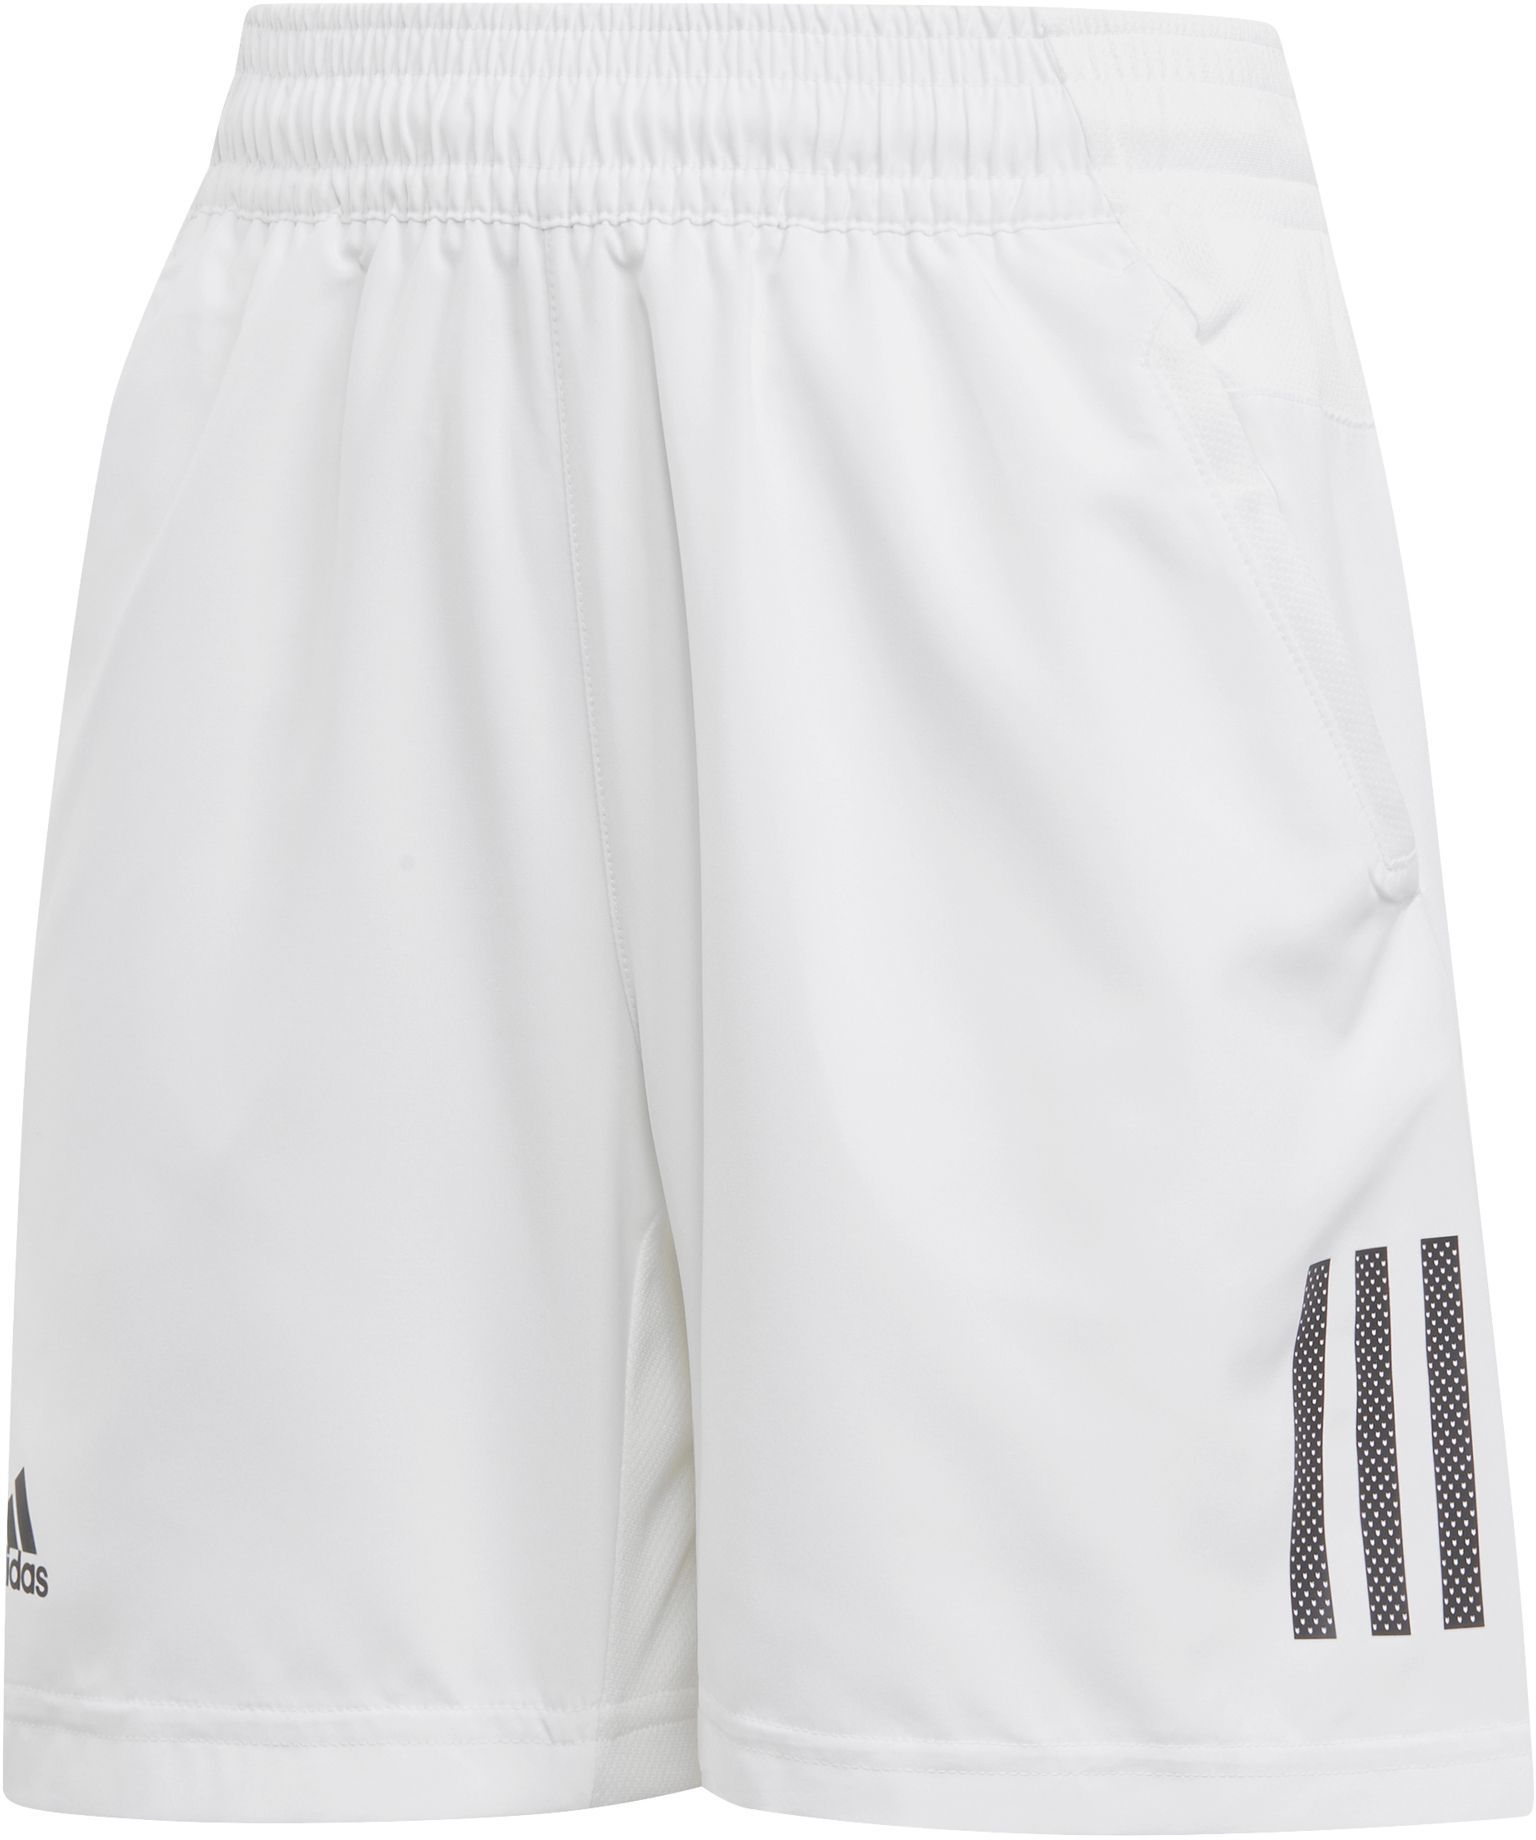 4a56773aae14 adidas Men's Club 3 Stripes Tennis Shorts in 2019 | Products ...